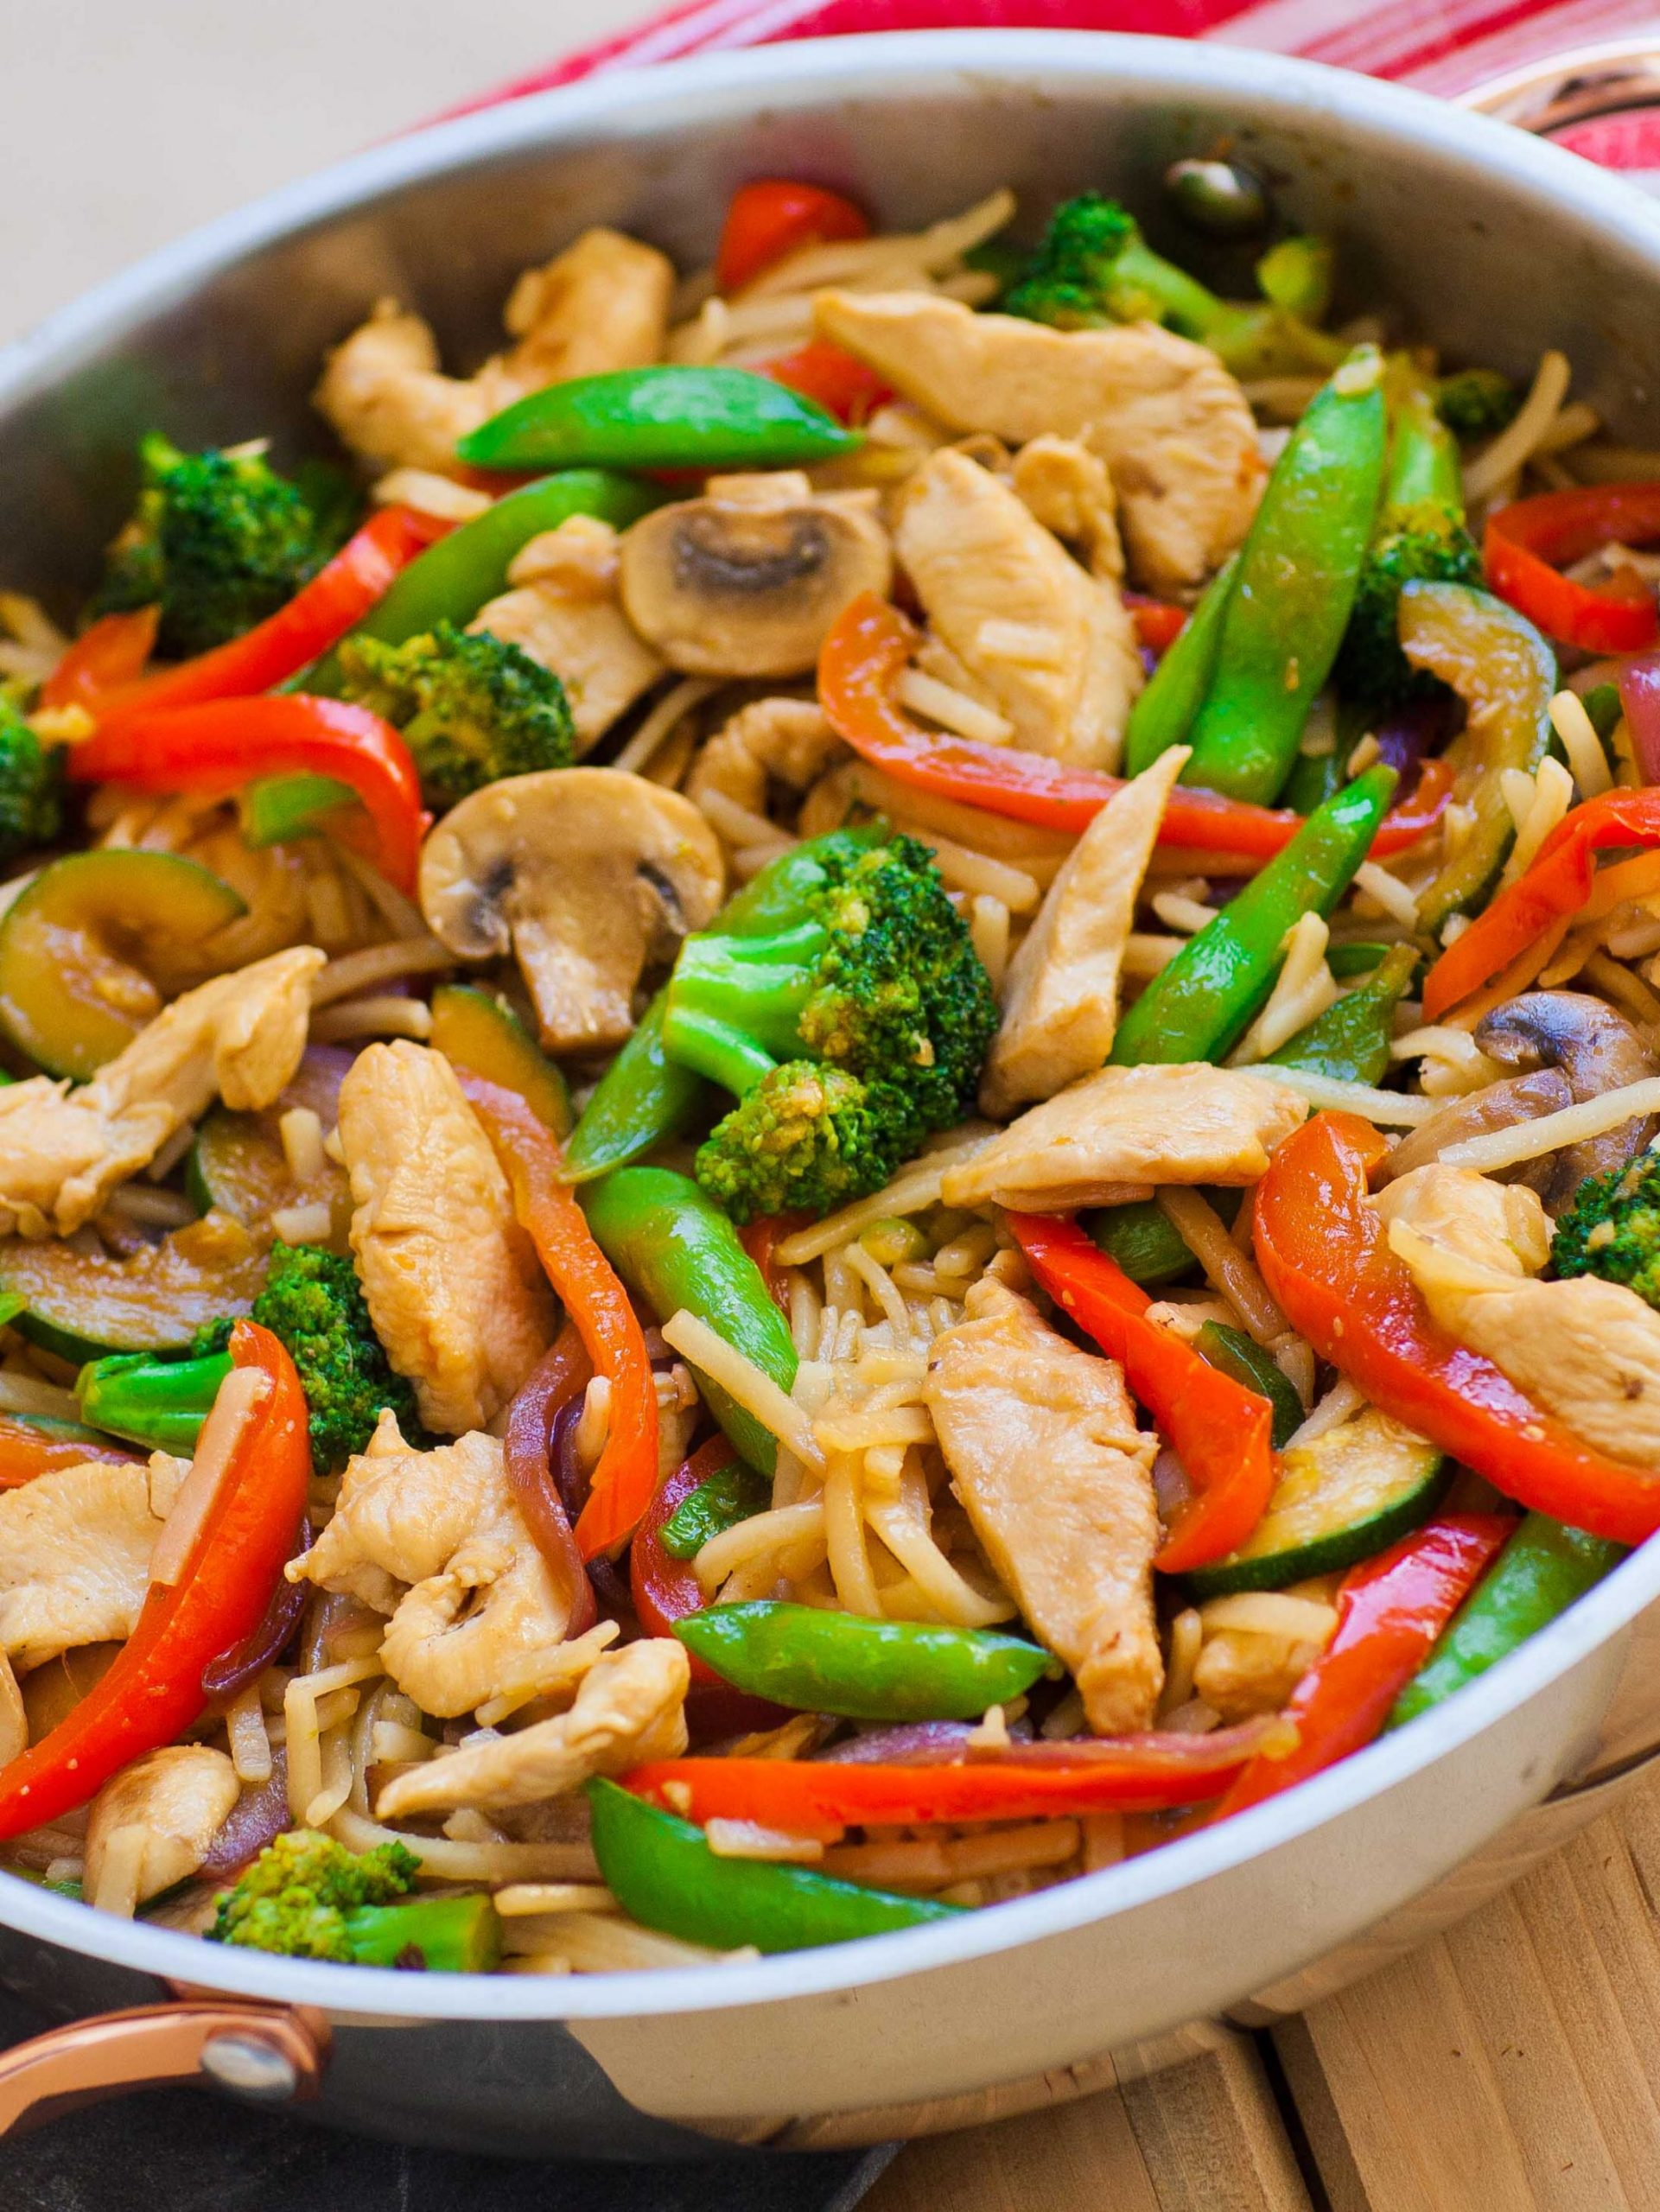 Teriyaki Chicken Stir Fry (video) - Recipes Chicken Breast Stir Fry